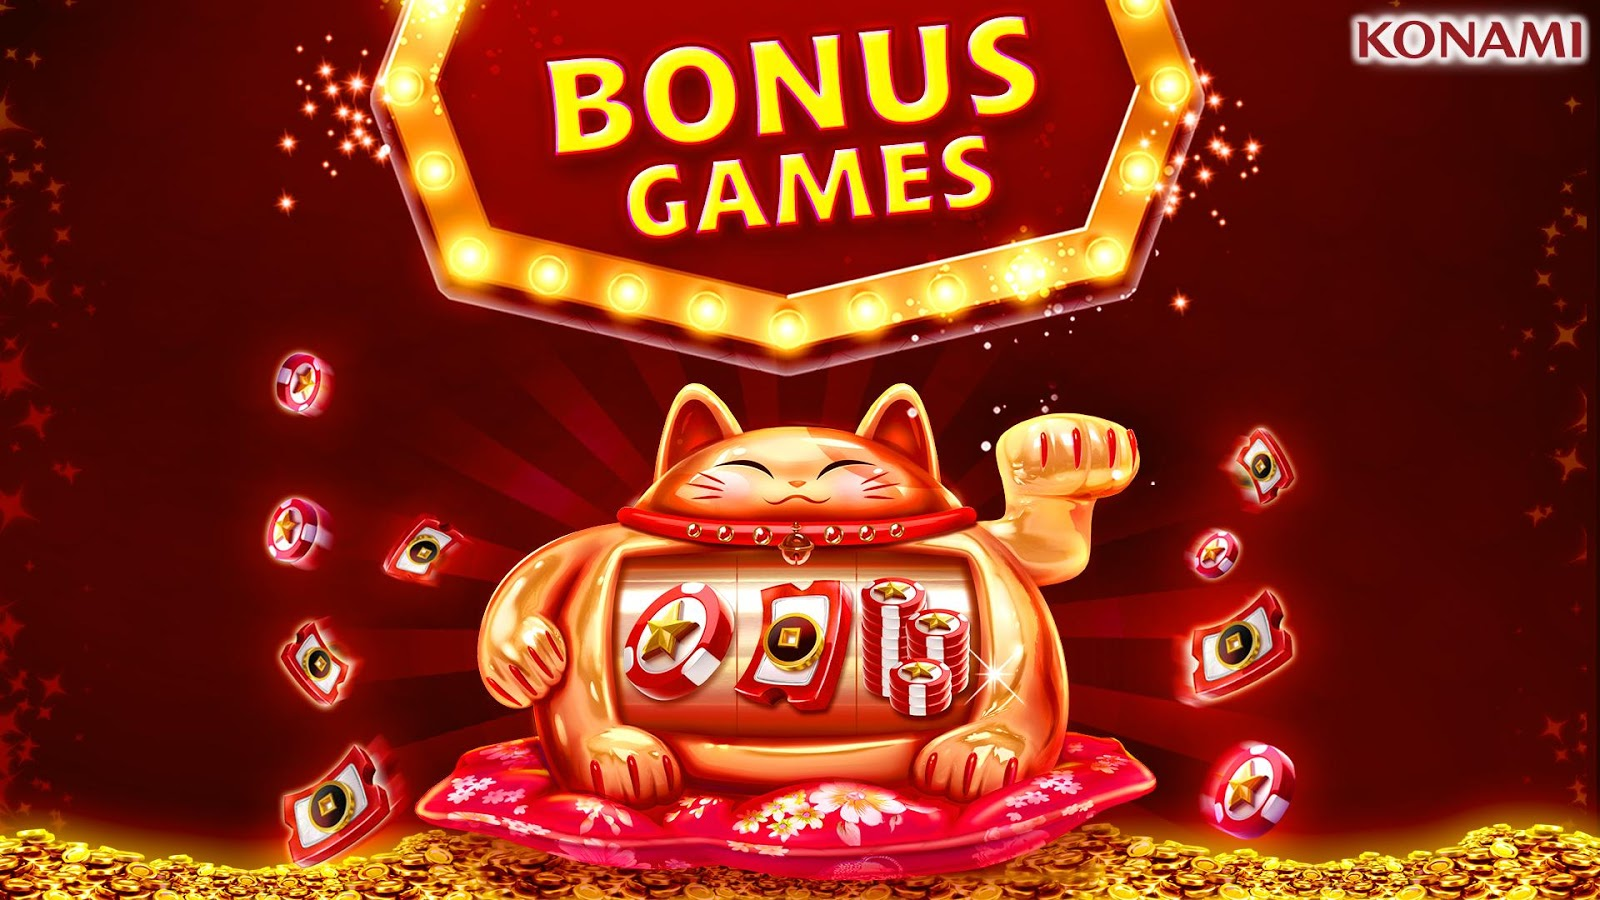 Casino games | Euro Palace Casino Blog - Part 31